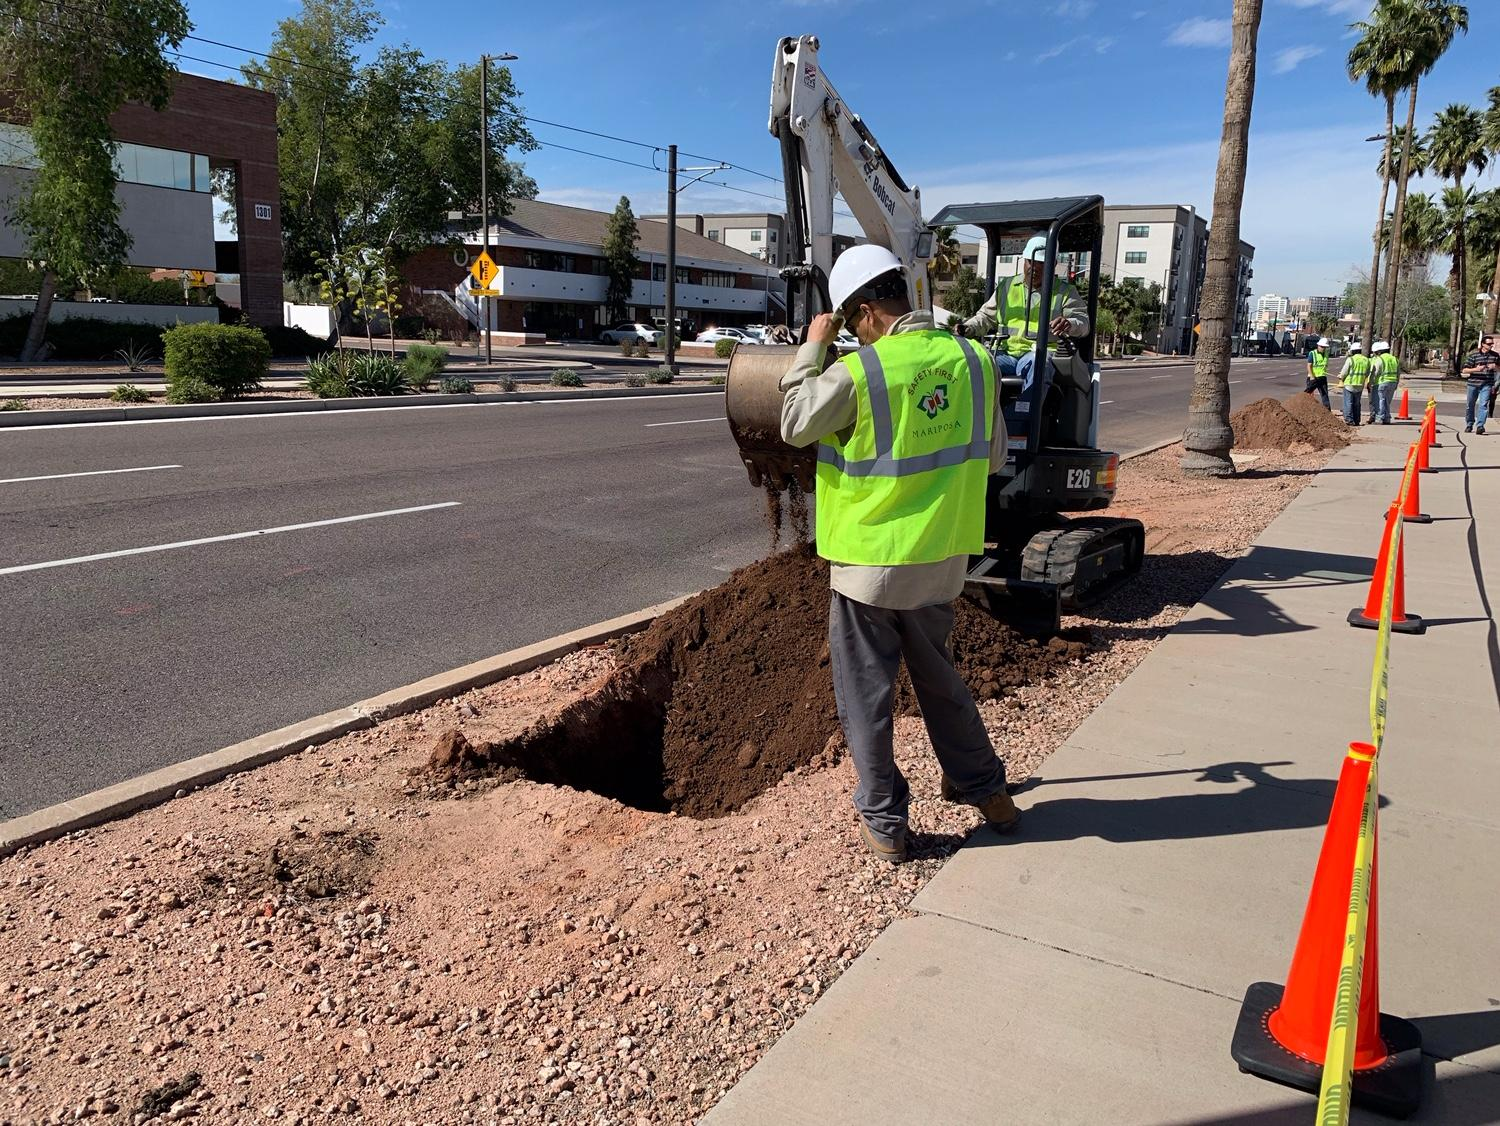 Phoenix Public Transit Department crews work on replacing missing trees with new saplings.